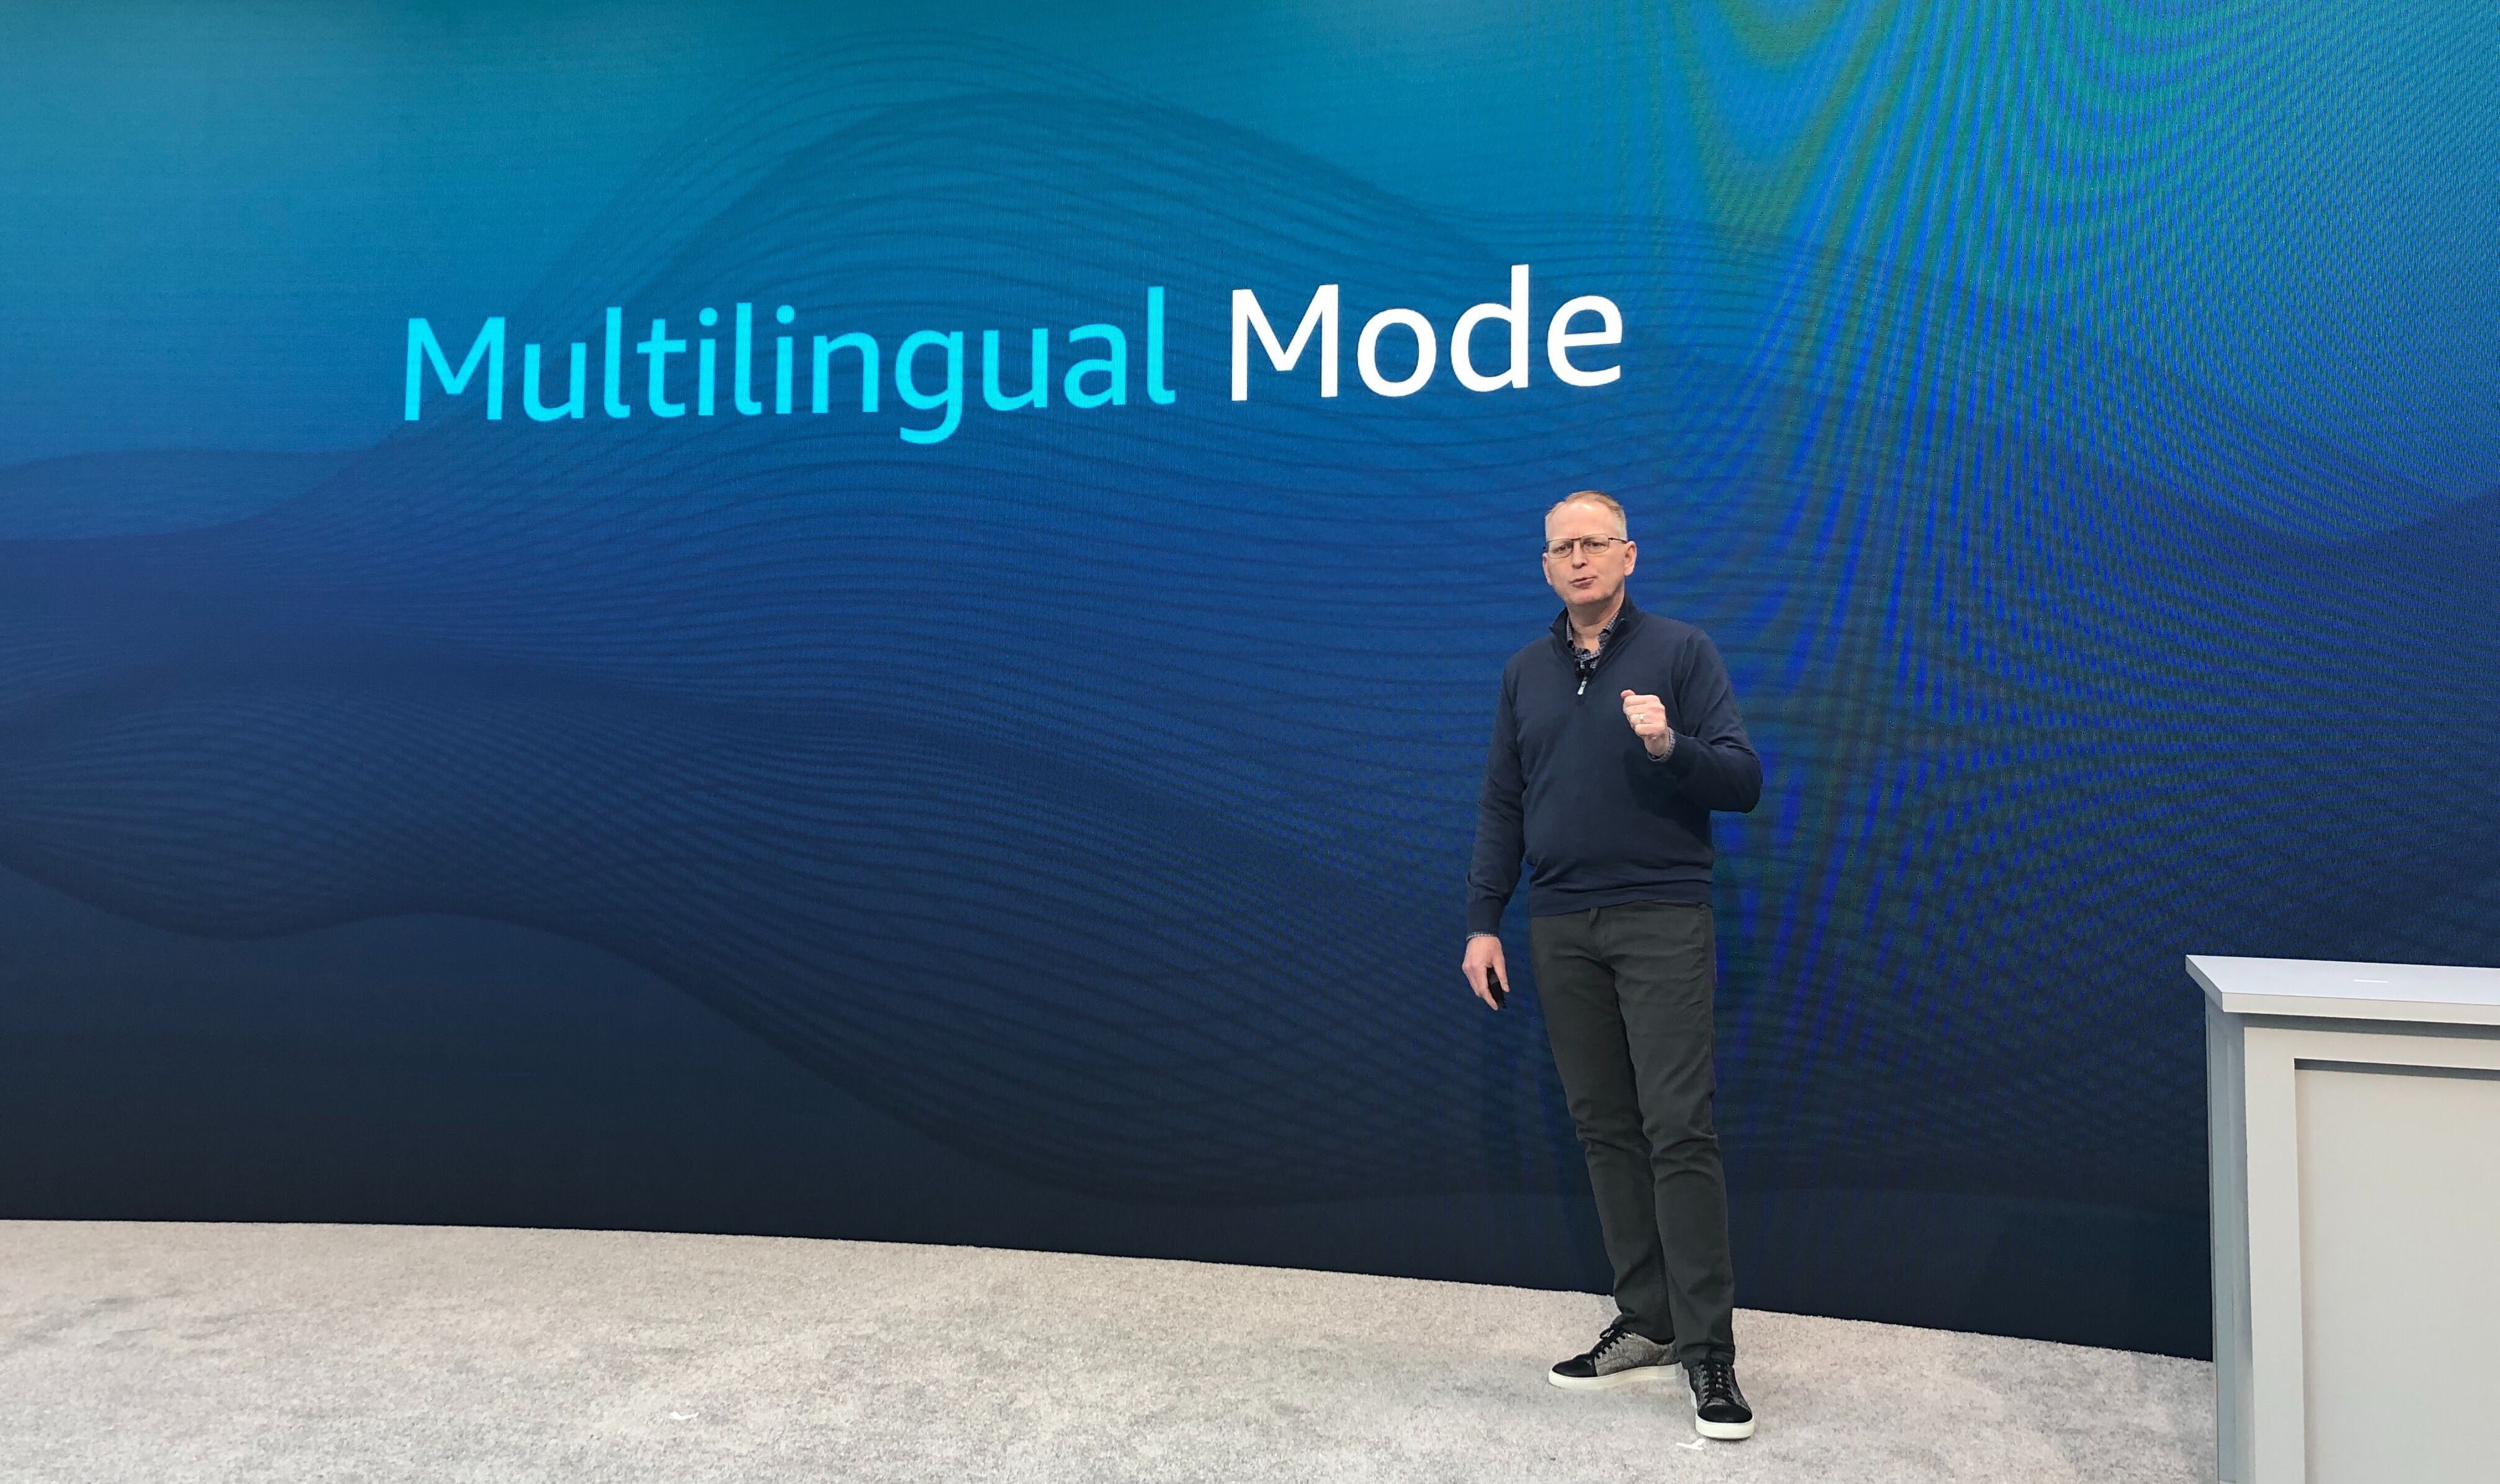 Amazon SVP of Devices Dave Limp announcing Alexa Multilingual Mode